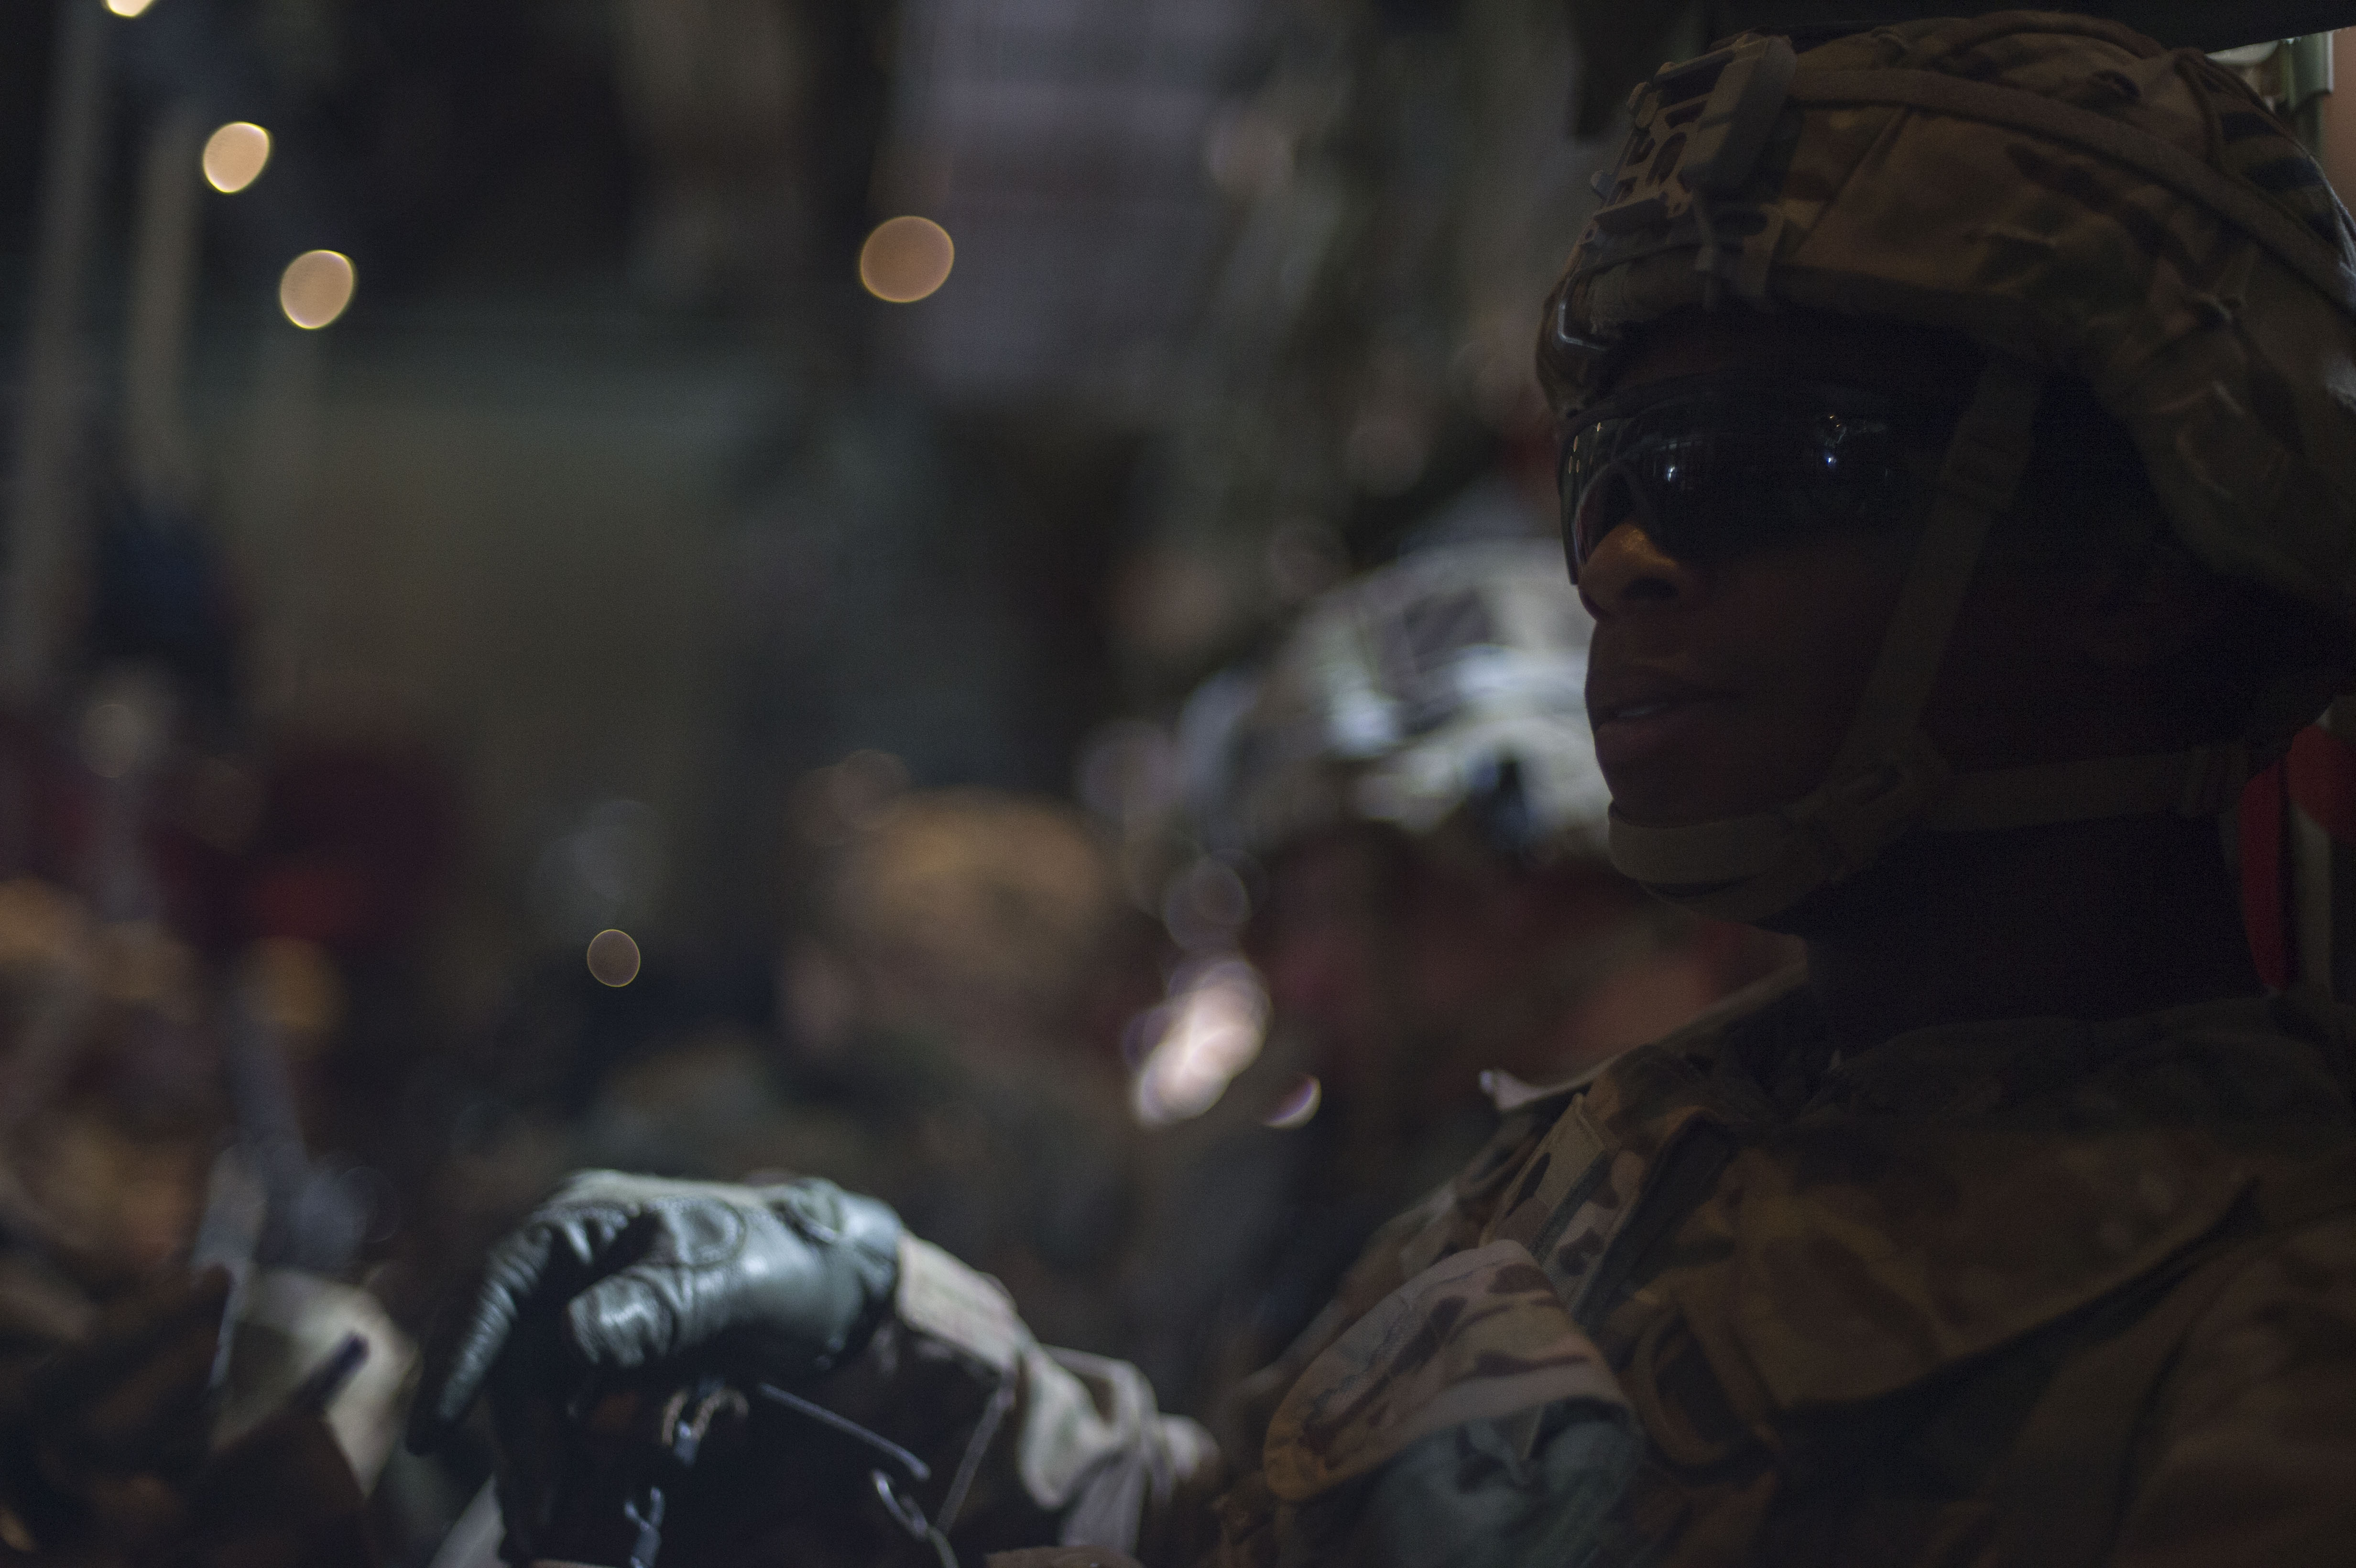 U.S. Army Spc. Kenneth Cook, of the East African Response Force, sits inside a U.S. Air Force C-130J Hercules while awaiting transport during an EARF validation exercise, May 27, 2016, at Camp Lemonnier, Djibouti. Combined Joint Task Force-Horn of Africa planned and executed the validation after  1st Battalion, 124th Infantry Regiment, or Task Force Hurricane, from Miami, Fla., assumed responsibility of the EARF mission from 2nd Battalion, 124th Infantry Regiment, or Task Force Seminoles, who will return to Orlando, Fla. (U.S. Air Force photo by Staff Sgt. Eric Summers Jr.)